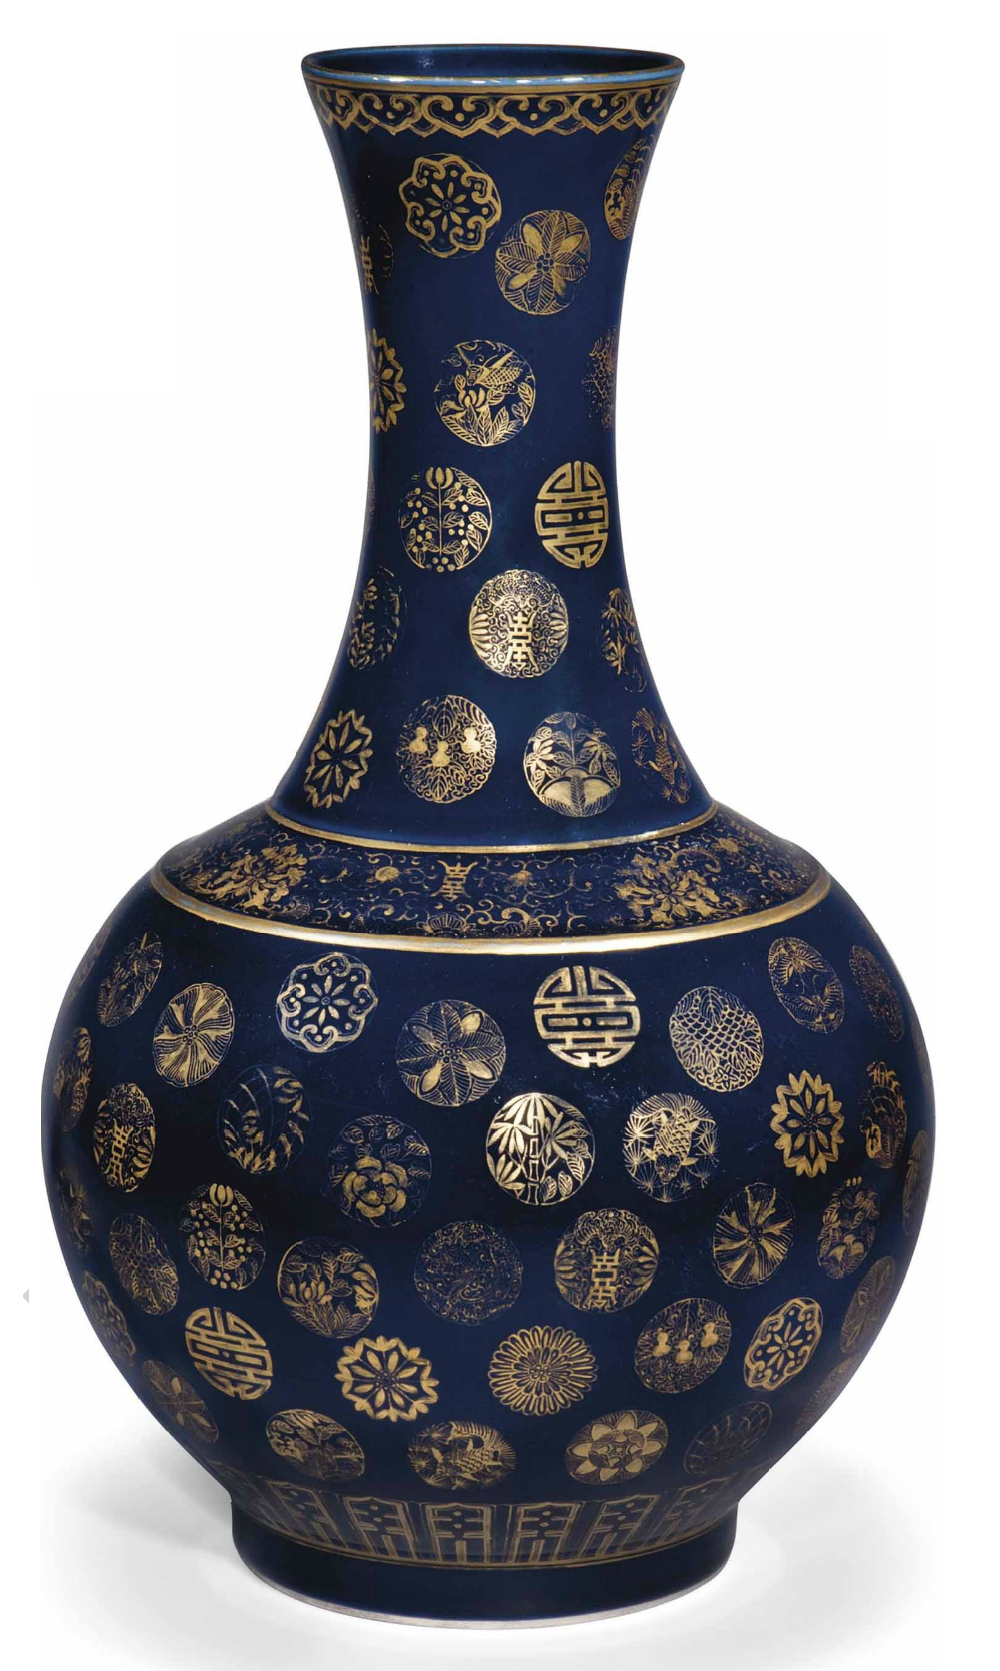 A chinese blue ground and gilt decorated bottle vase 20th century a chinese blue ground and gilt decorated bottle vase 20th century the bomb body and tall flaring neck decorated with scattered gilt medallions of flowers reviewsmspy